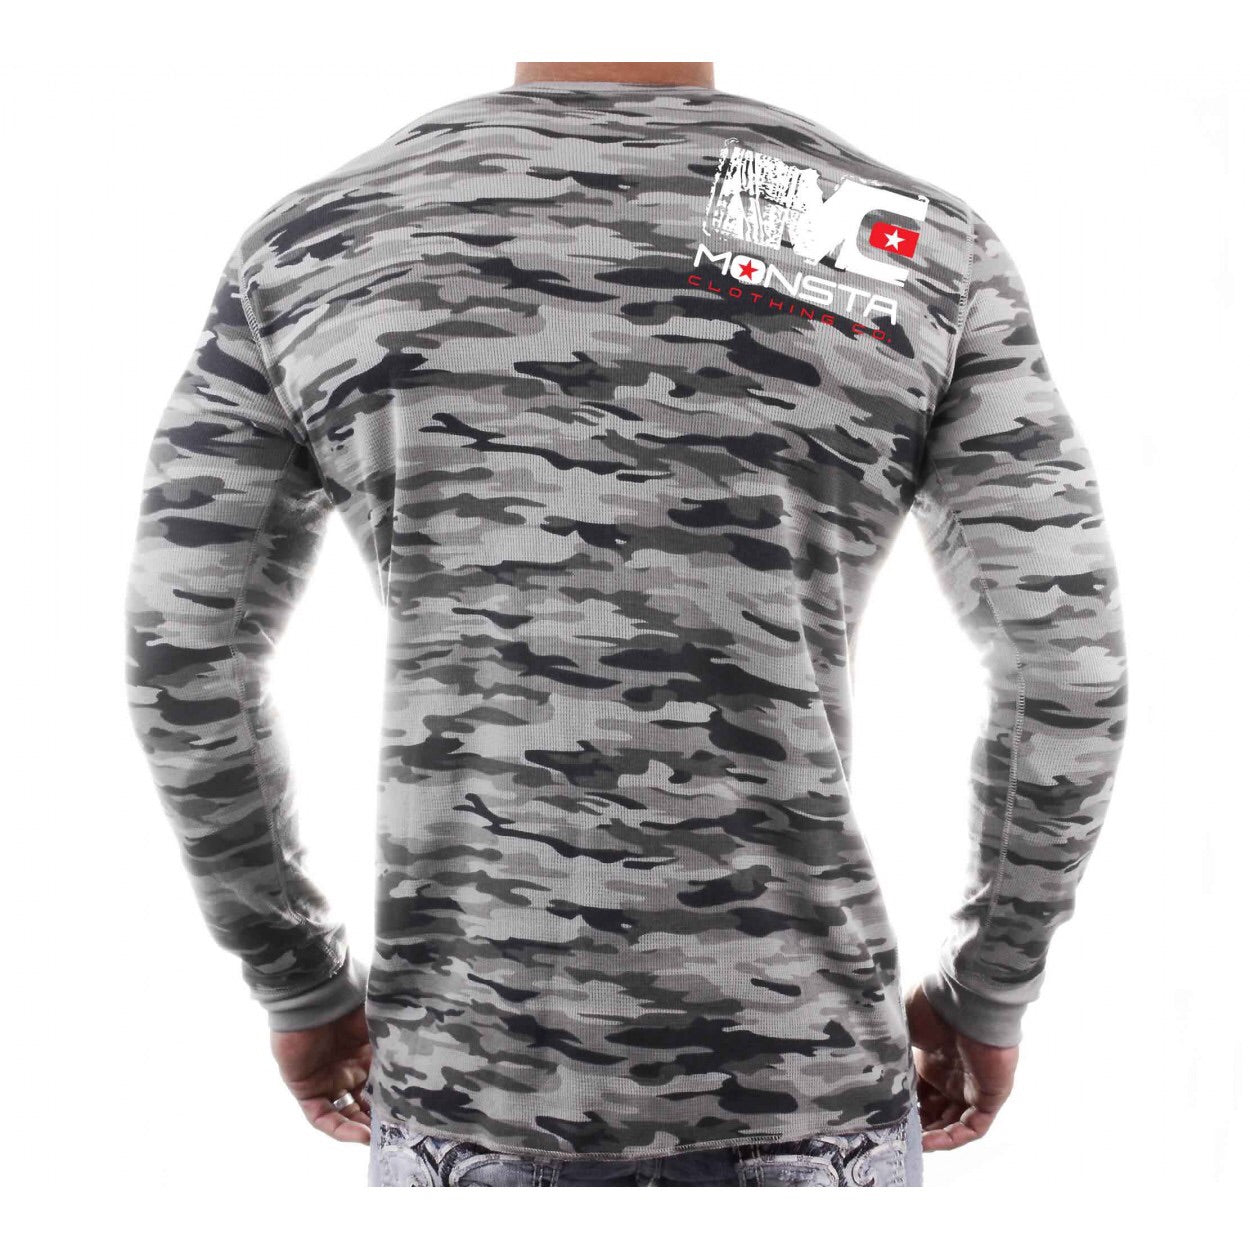 LONG SLEEVE: CAMO MONSTA LONGSLEEVE -258 - Monsta Clothing Australia